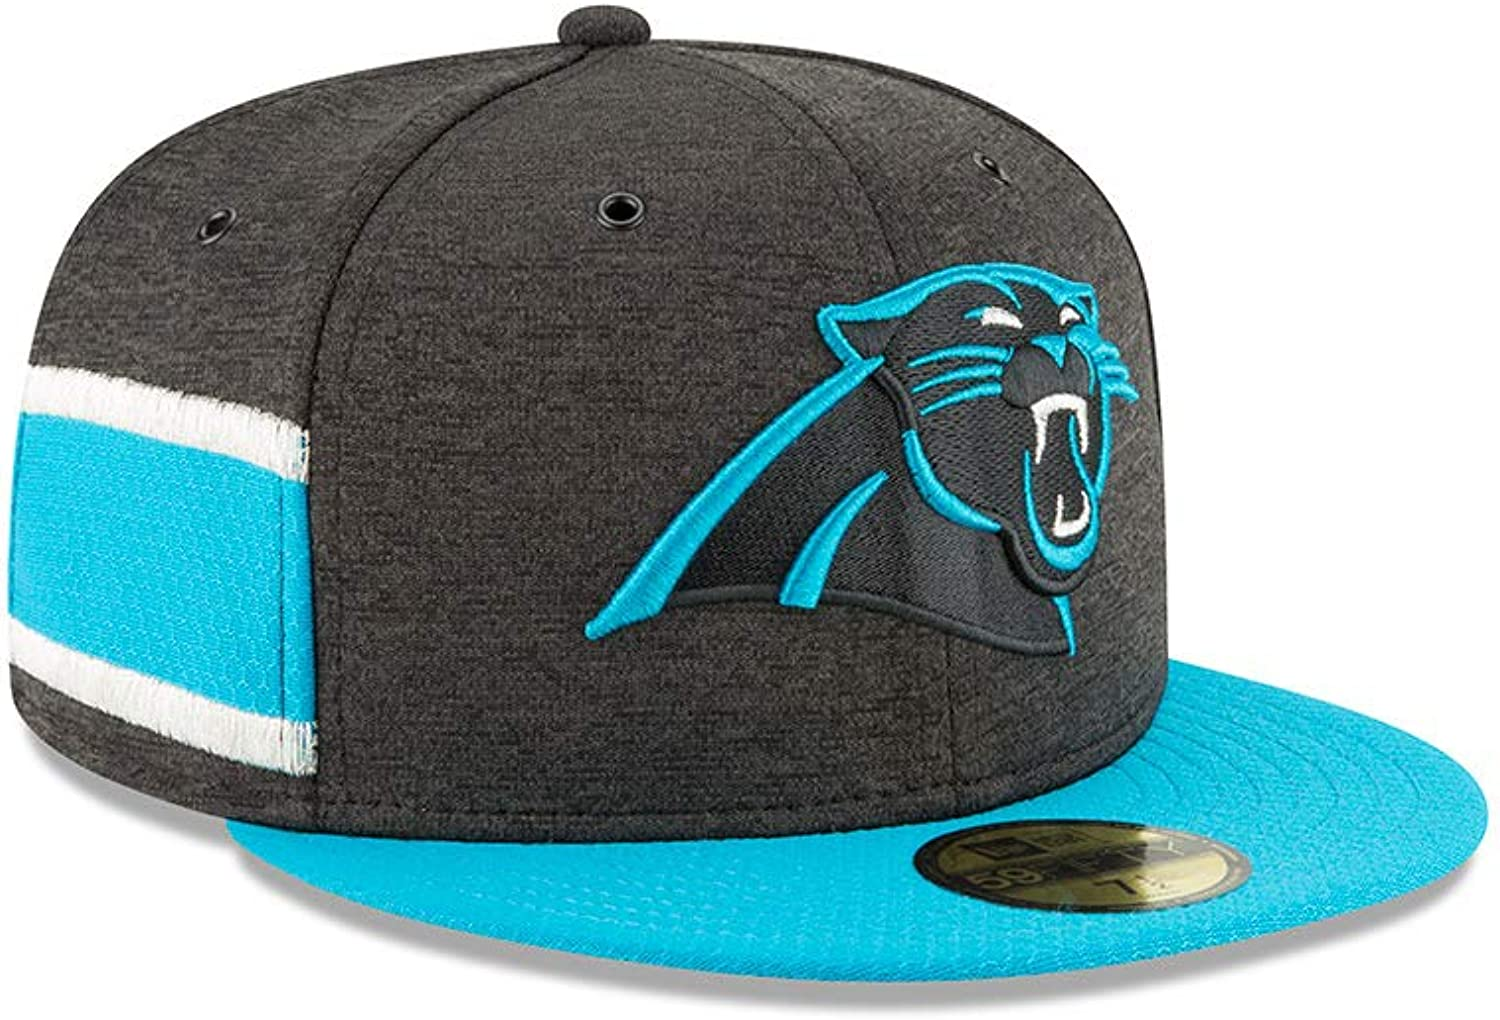 New Era NFL Carolina Panthers Authentic Authentic Authentic 2018 Sideline 59FIFTY Home Cap B07GFK6T1W  Sorgfältig ausgewählte Materialien a7fe4a